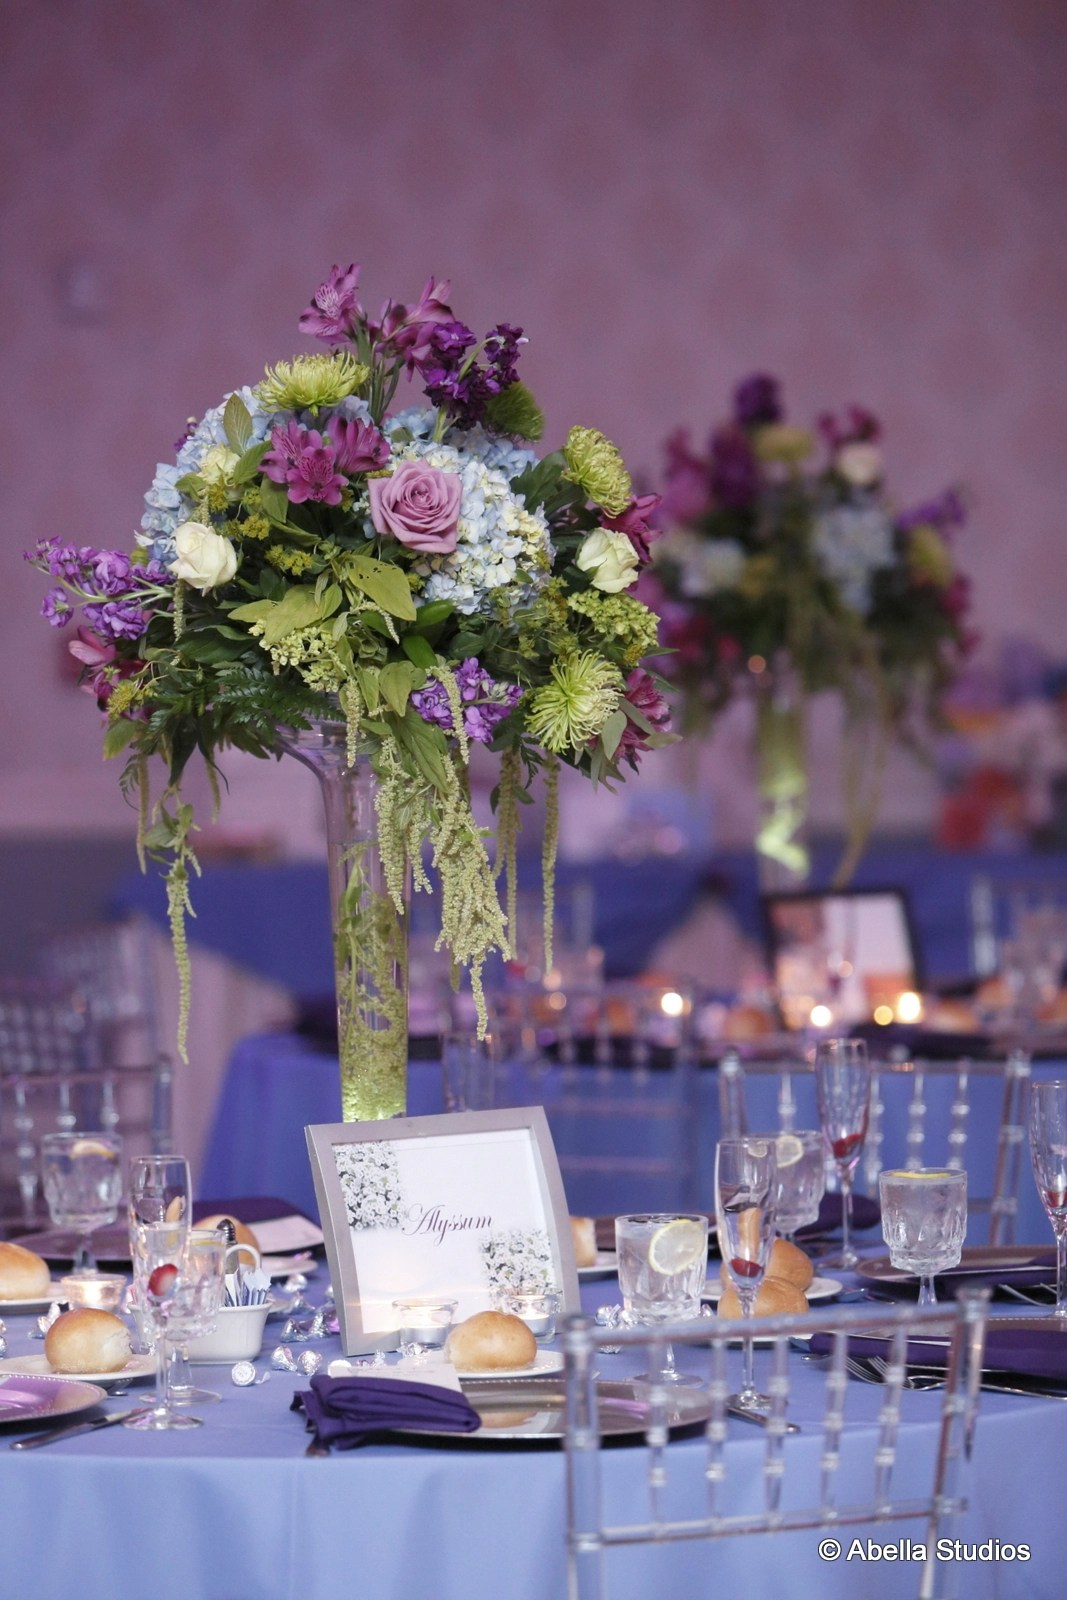 Wedding Centrepiece Ideas 5